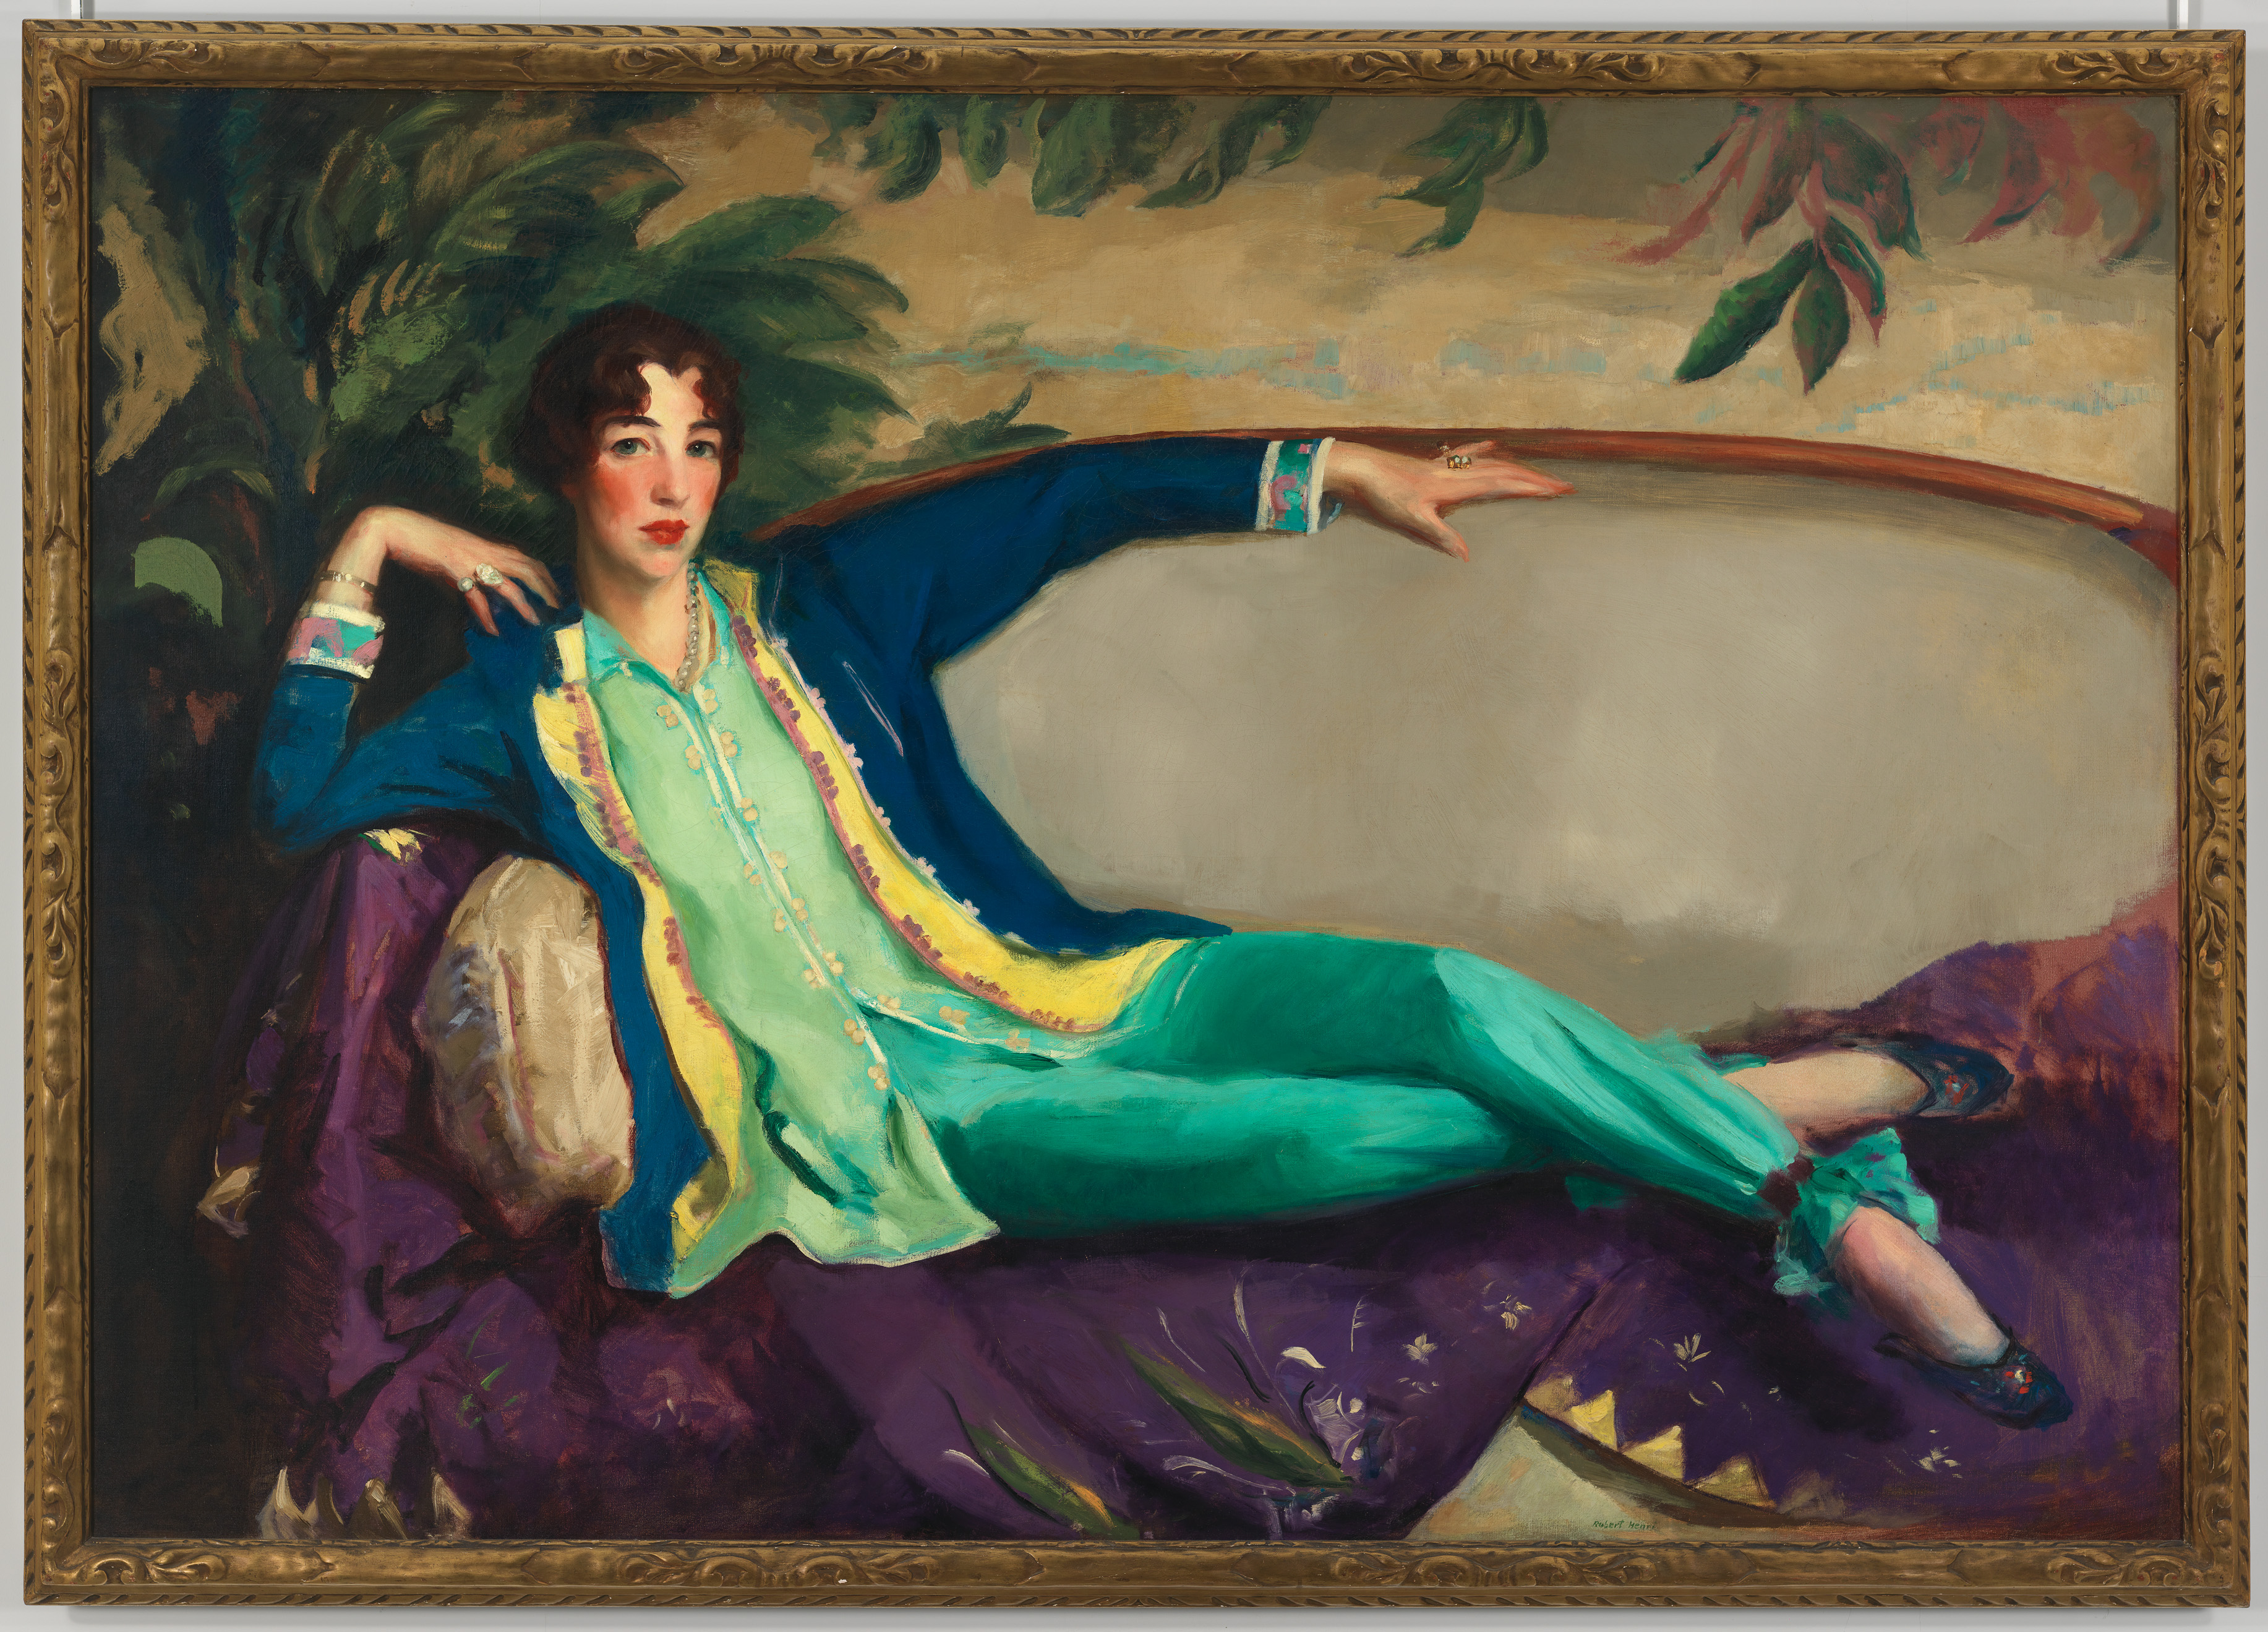 Robert Henri, 18651929 Gertrude Vanderbilt Whitney, (1916) 	Oil on canvas, Overall: 49 15/16 x 72in. (126.8 x 182.9 cm) 	Whitney Museum of American Art, New York; 	Gift of Flora Whitney Miller  86.70.3